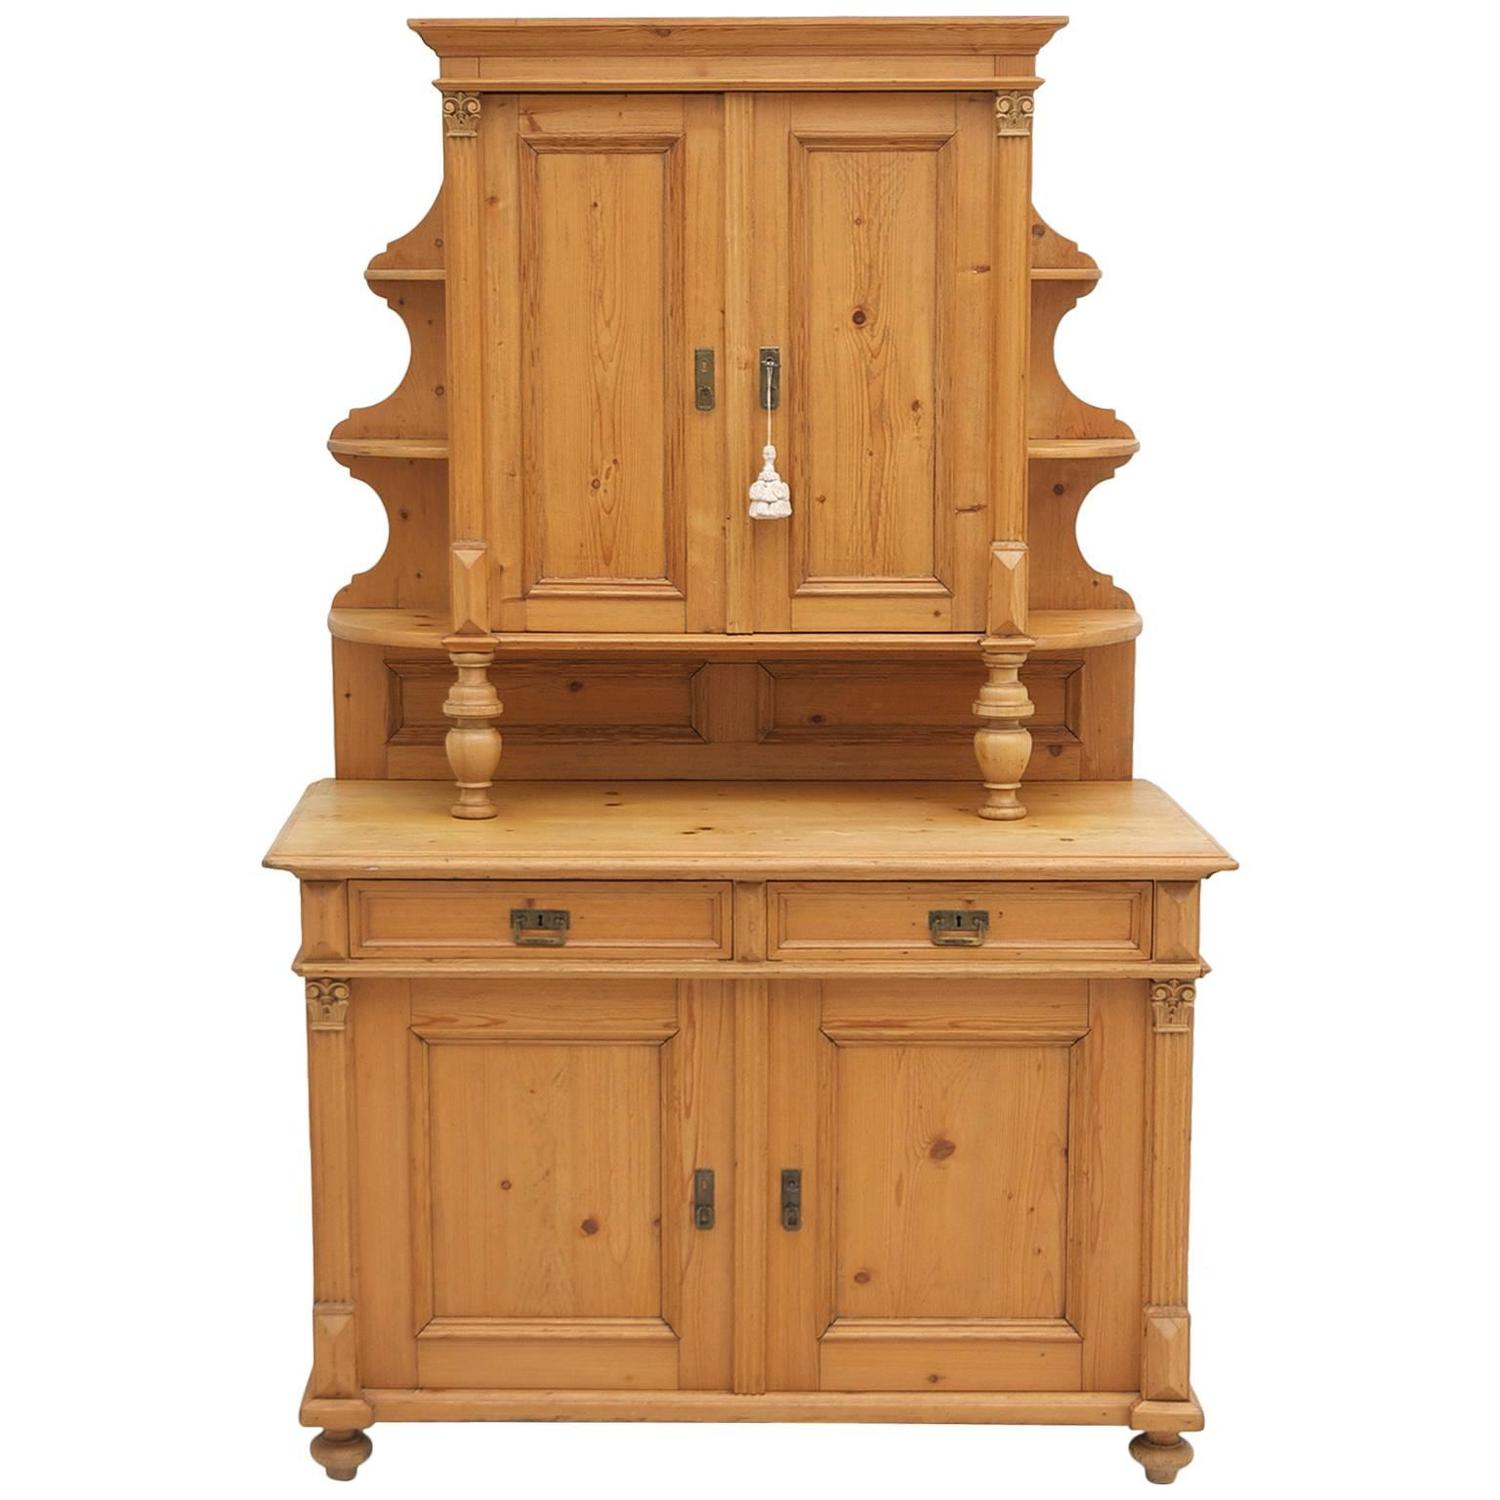 Great Antique Pine Gründerzeit Buffet Cupboard, Circa 1880